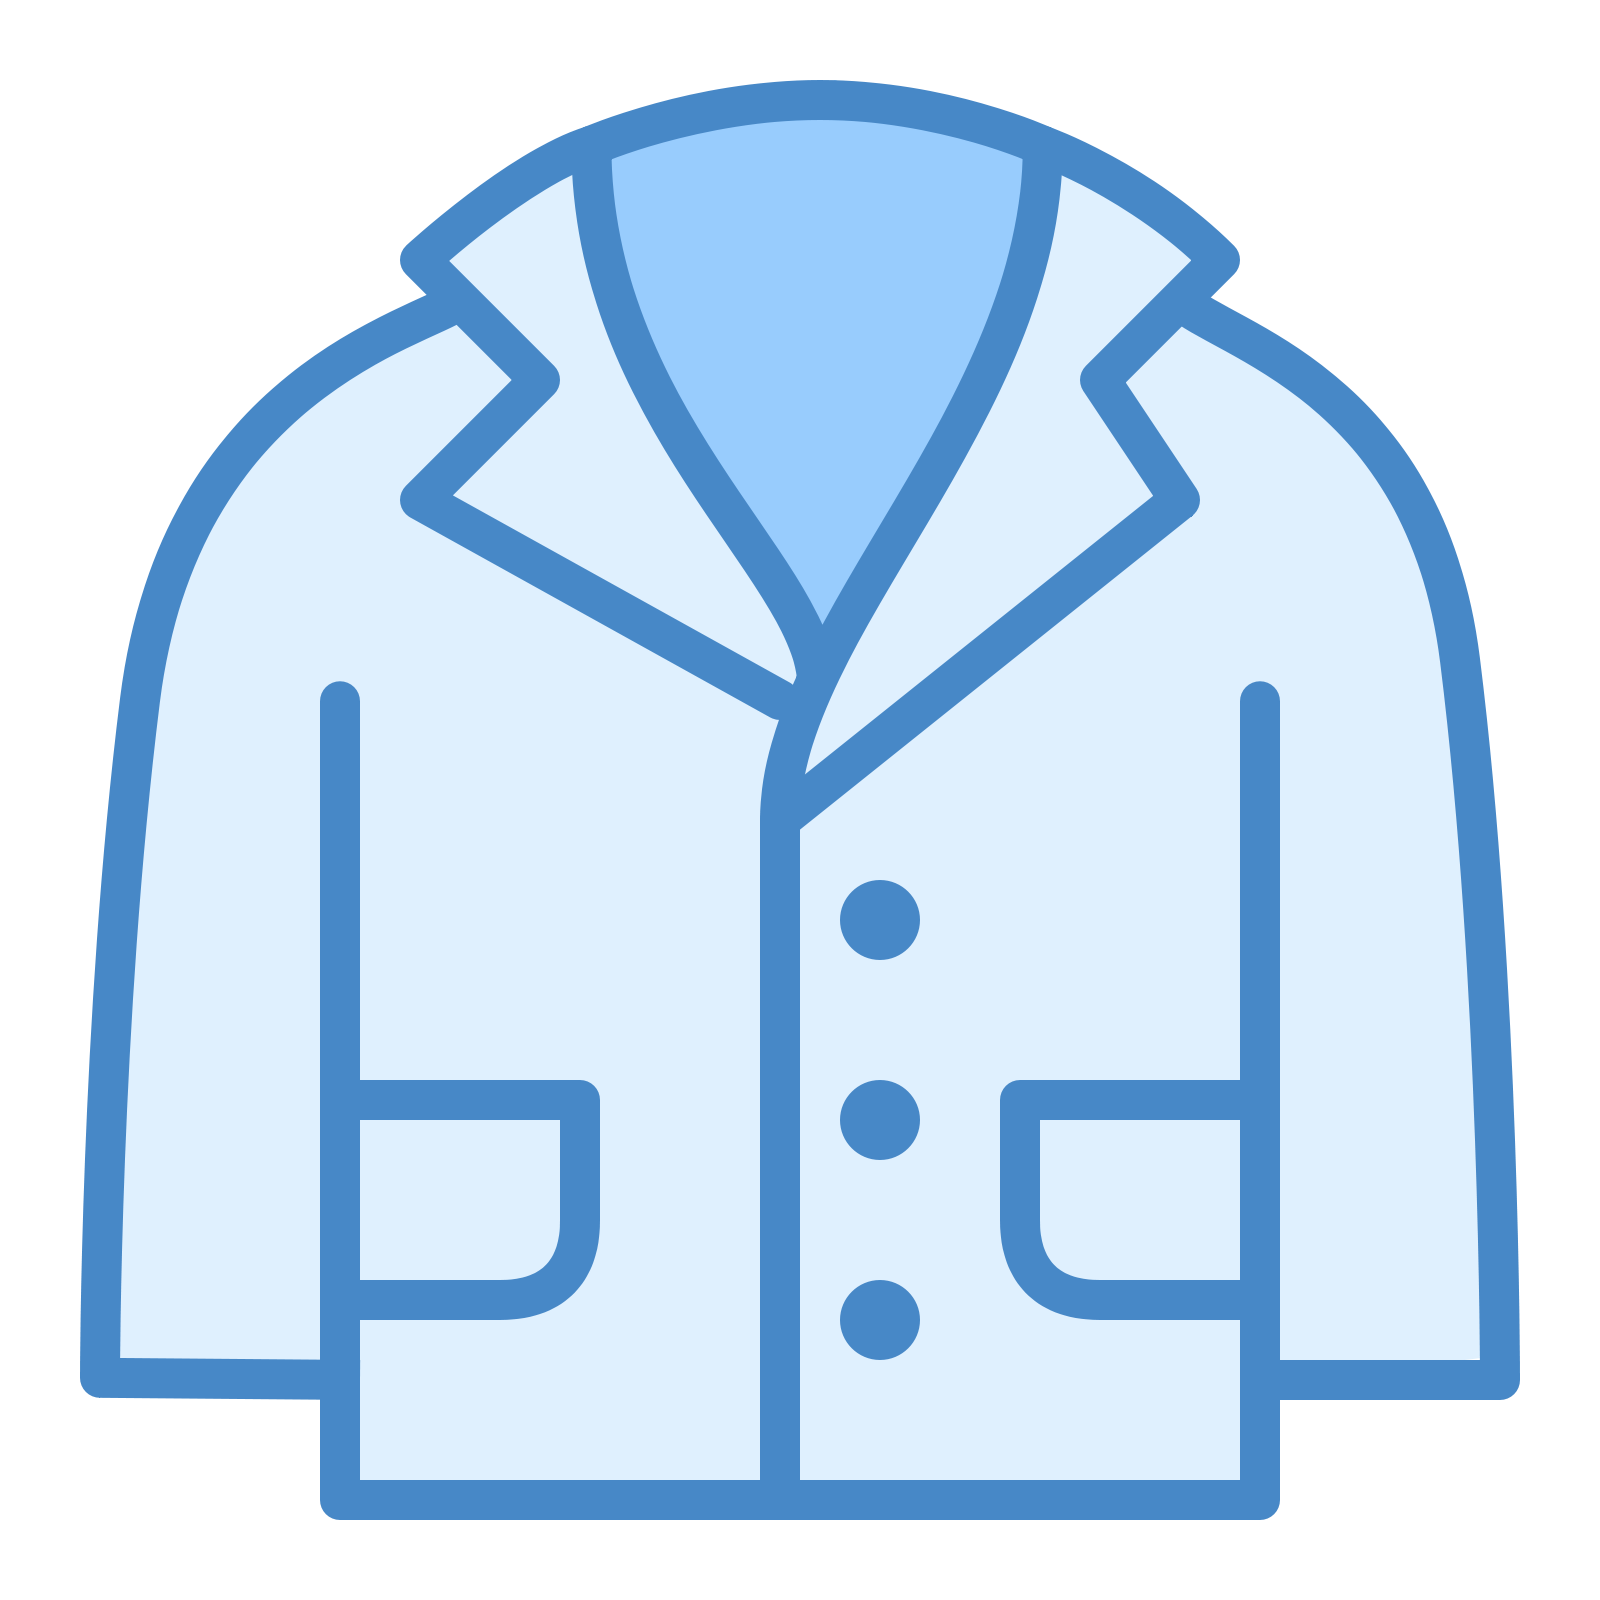 Lab Coat Icon - Wear, Transparent background PNG HD thumbnail